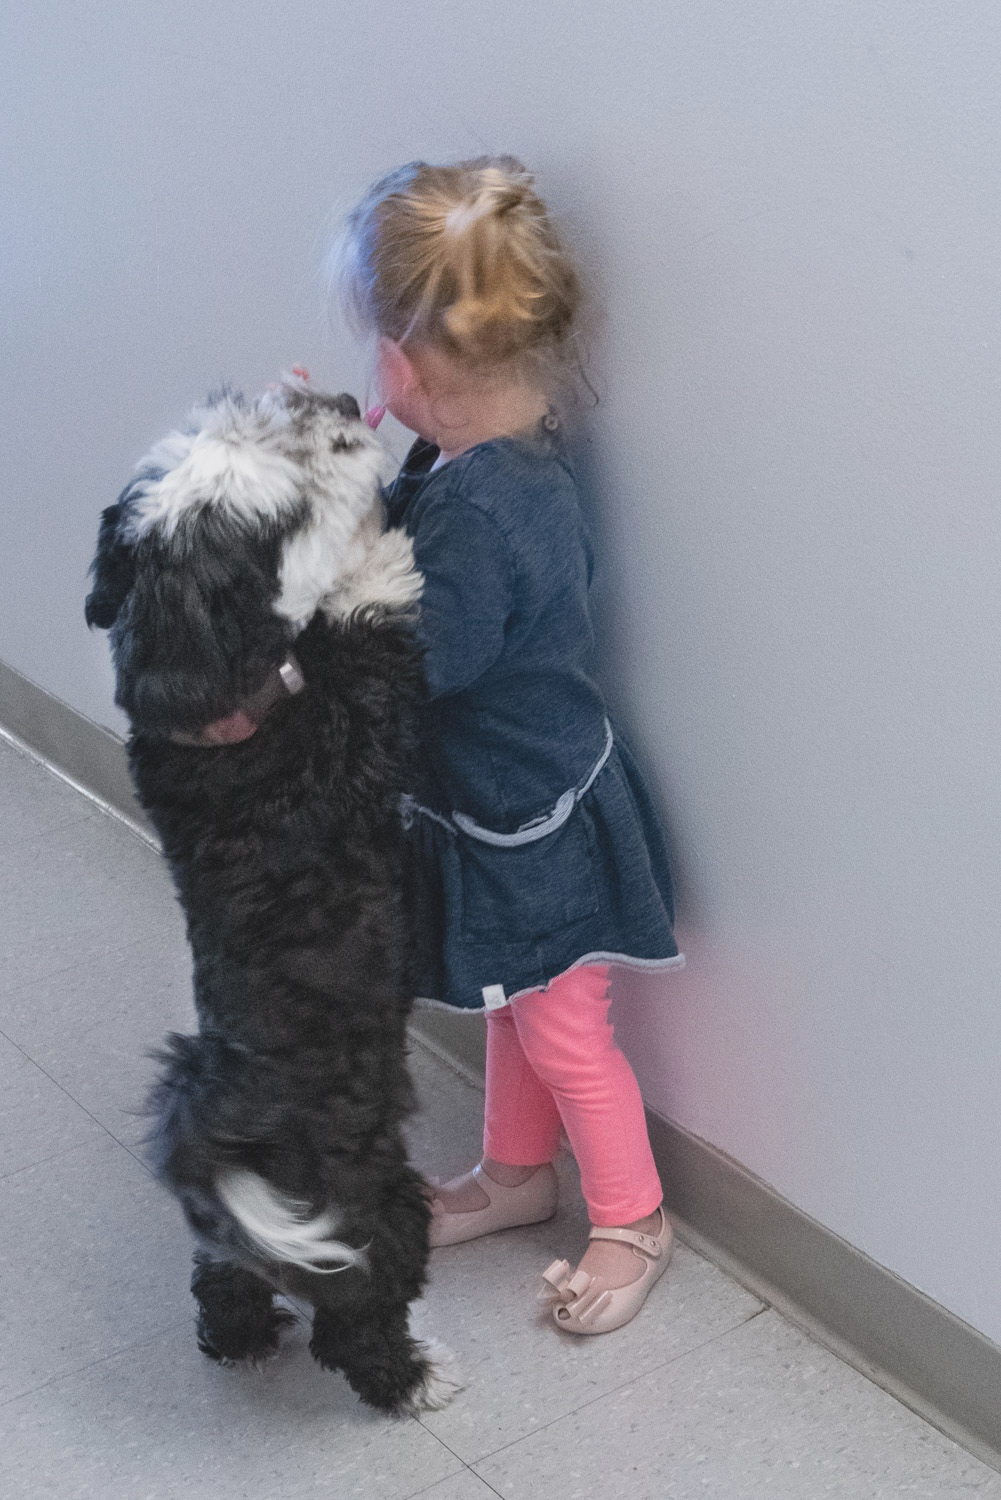 Fred the havanese giving a kiss to a toddler johnstuartstudio.jpg